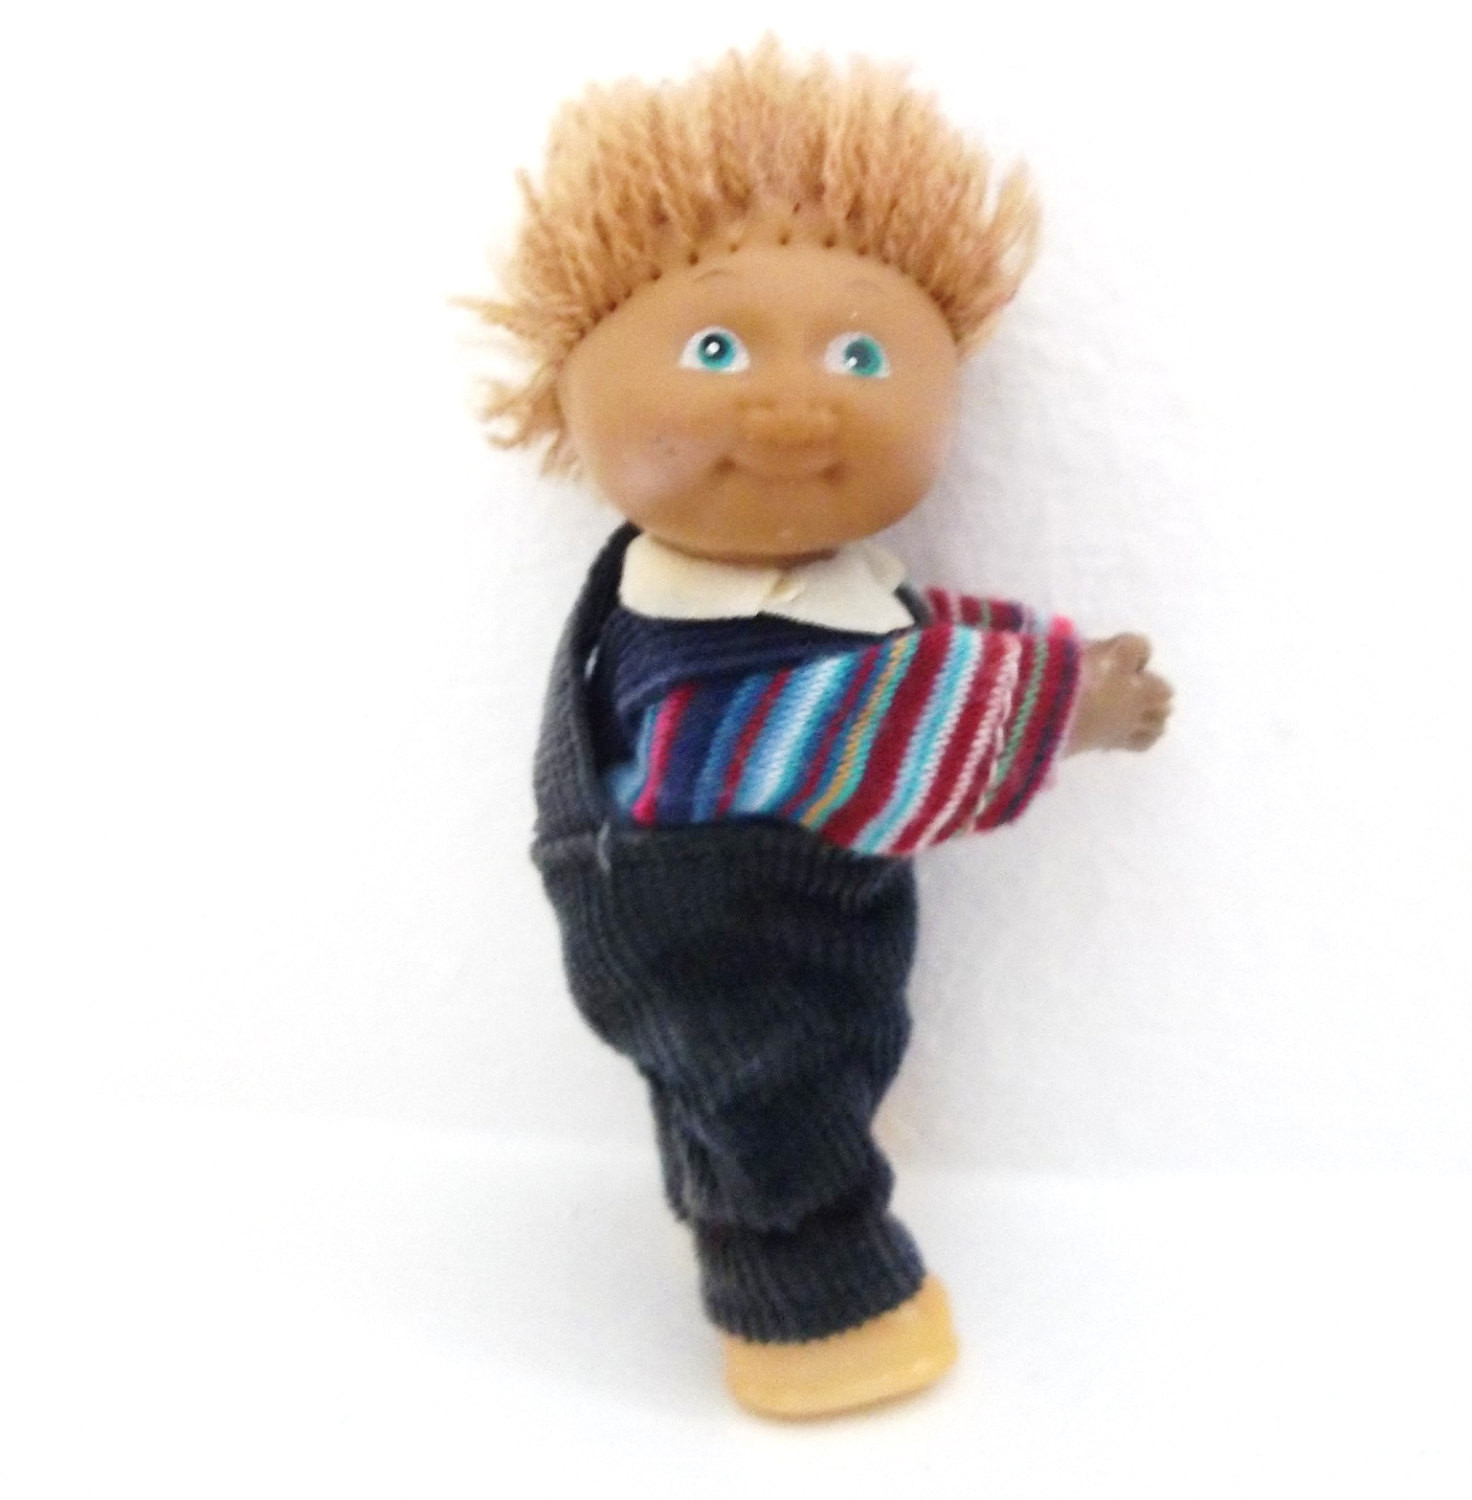 Cabbage Patch Kid Boy Doll Miniature Clip 1980s Toy